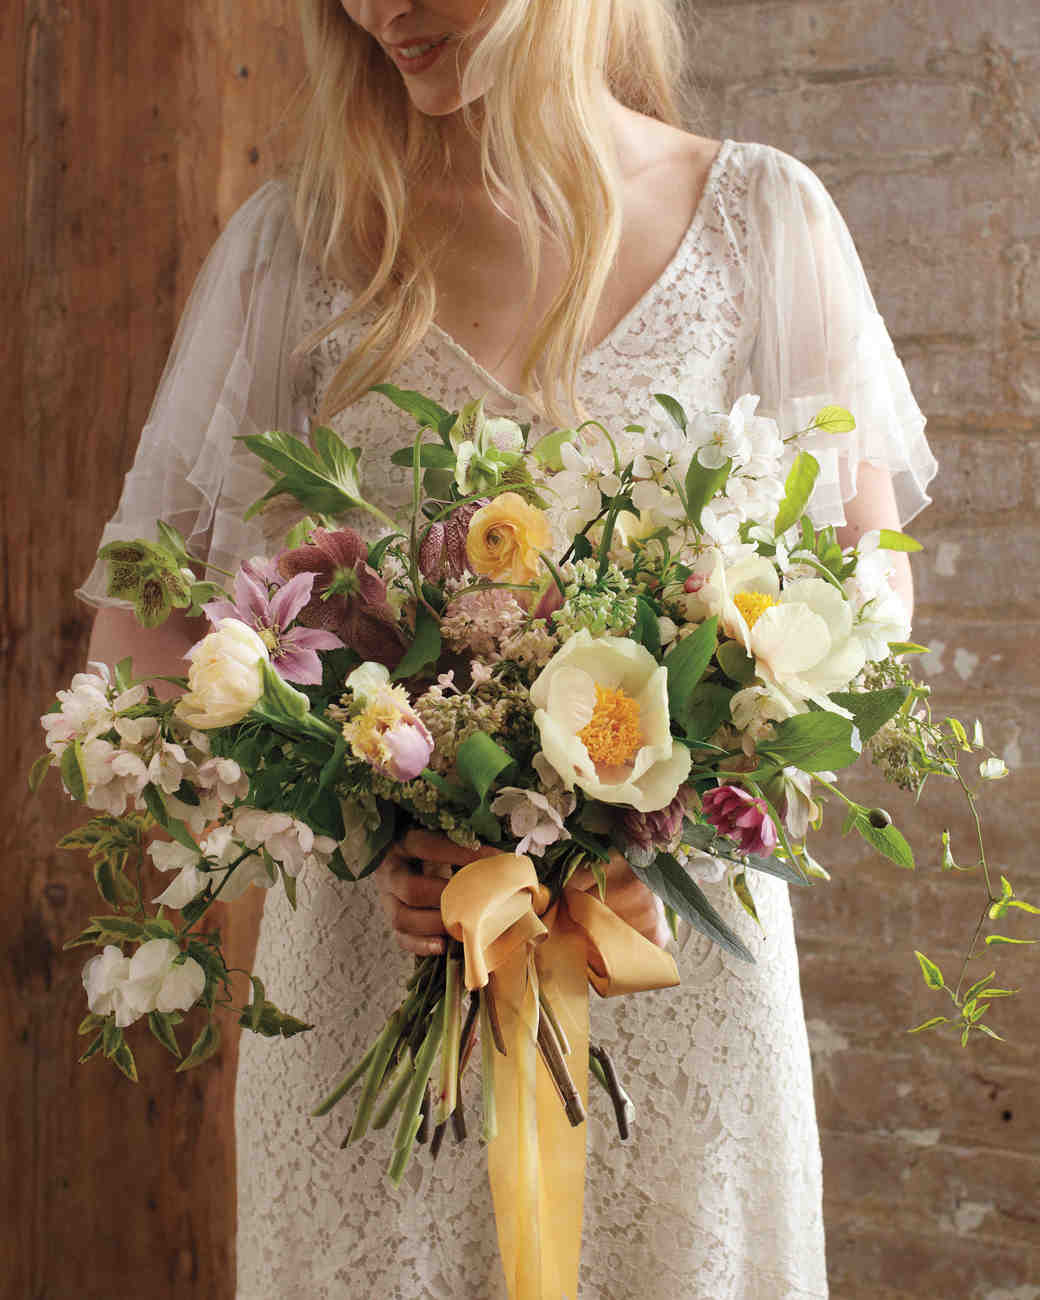 Ideas For Wedding Flower Arrangements: Spring Wedding Flower Ideas From The Industry's Best